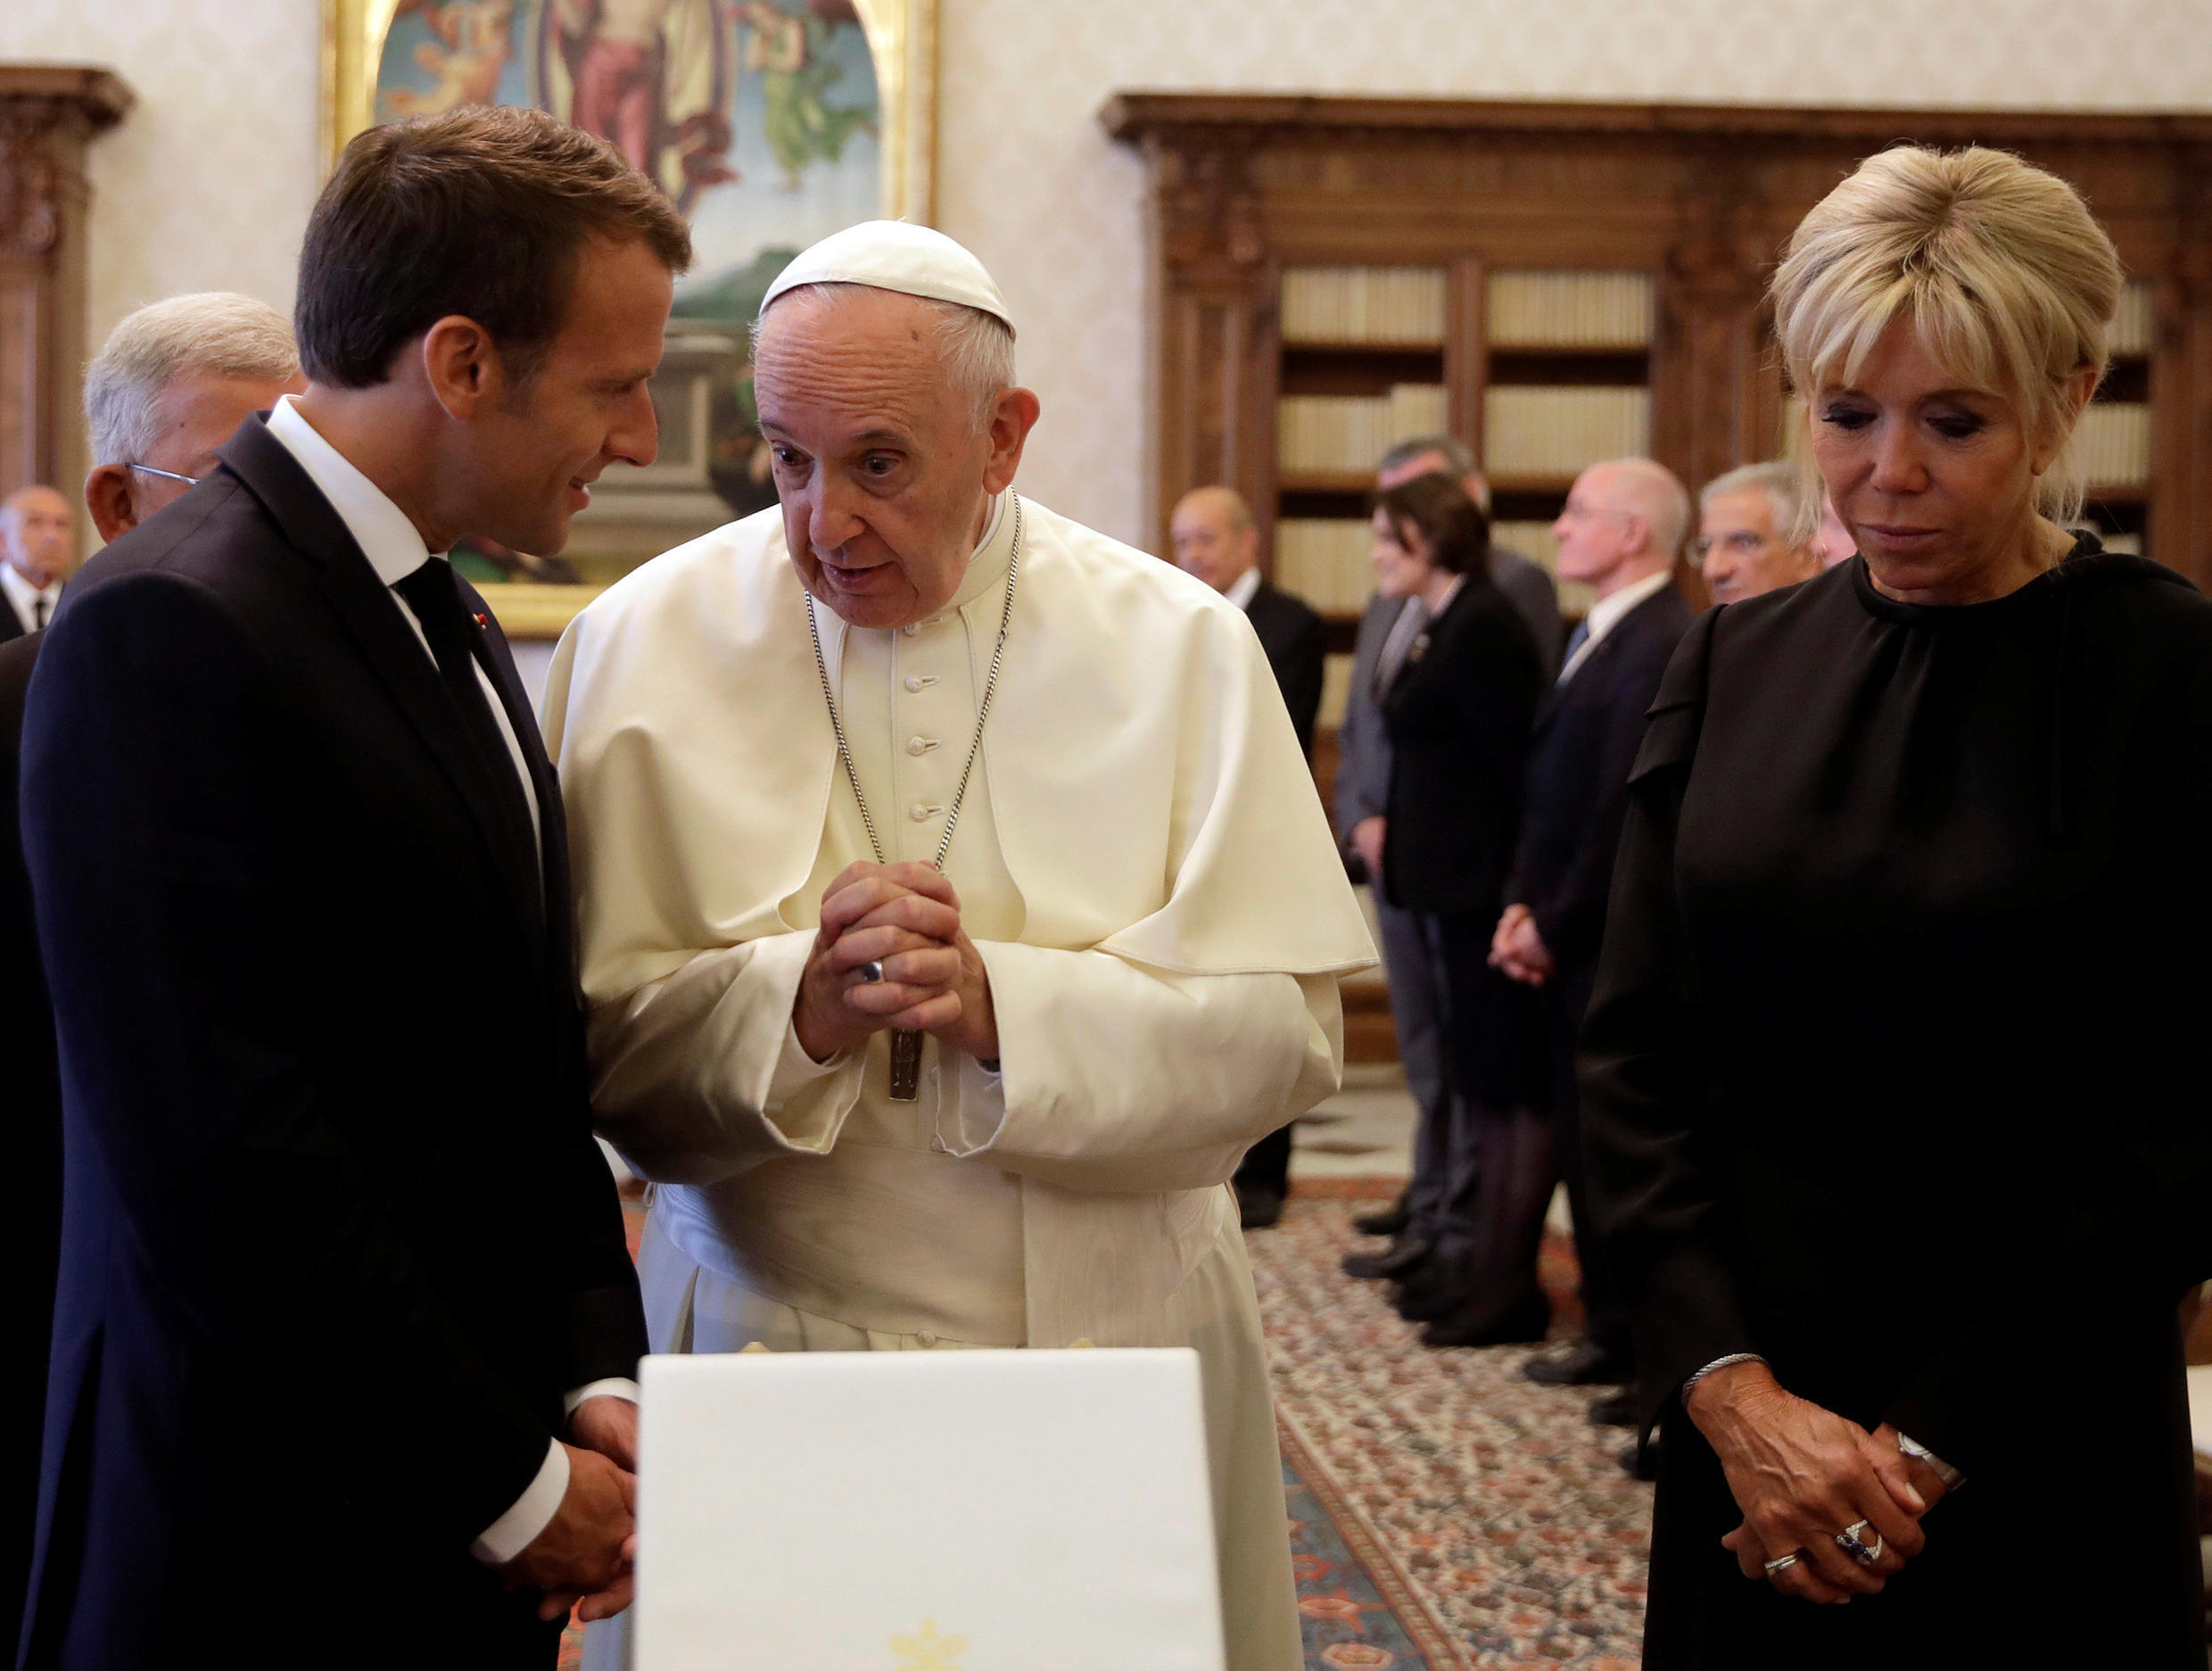 Pope Francis exchanges gifts with French President Emmanuel Macron and his wife Brigitte during a private audience at the Vatican, June 26, 2018.